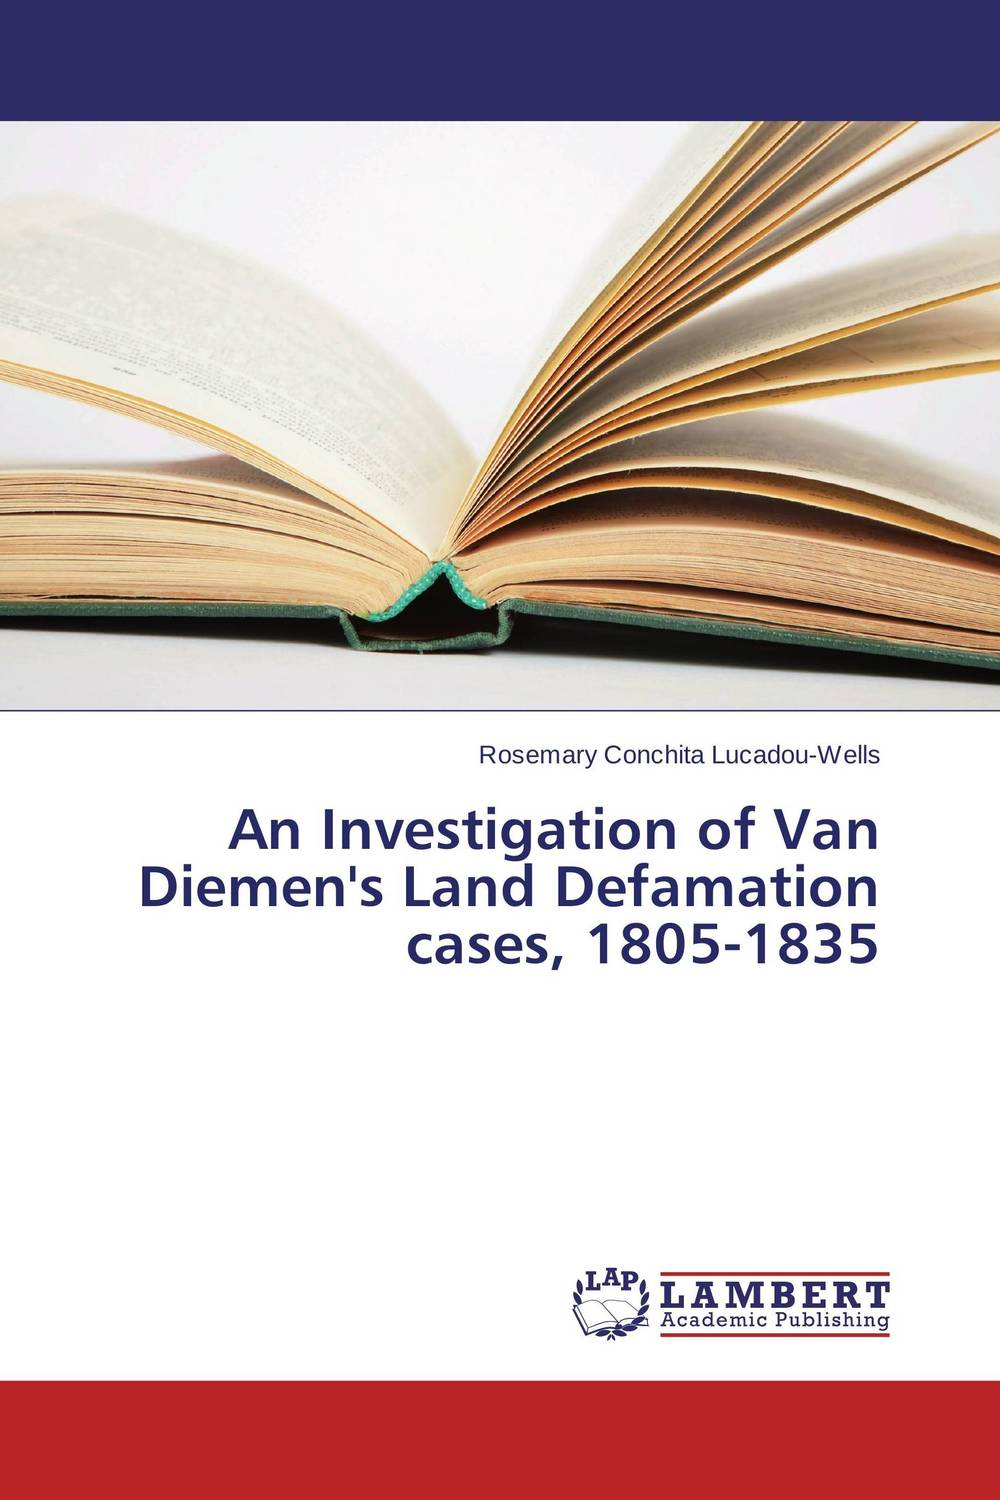 An Investigation of Van Diemen's Land Defamation cases, 1805-1835 atypical employment practices a qualitative investigation